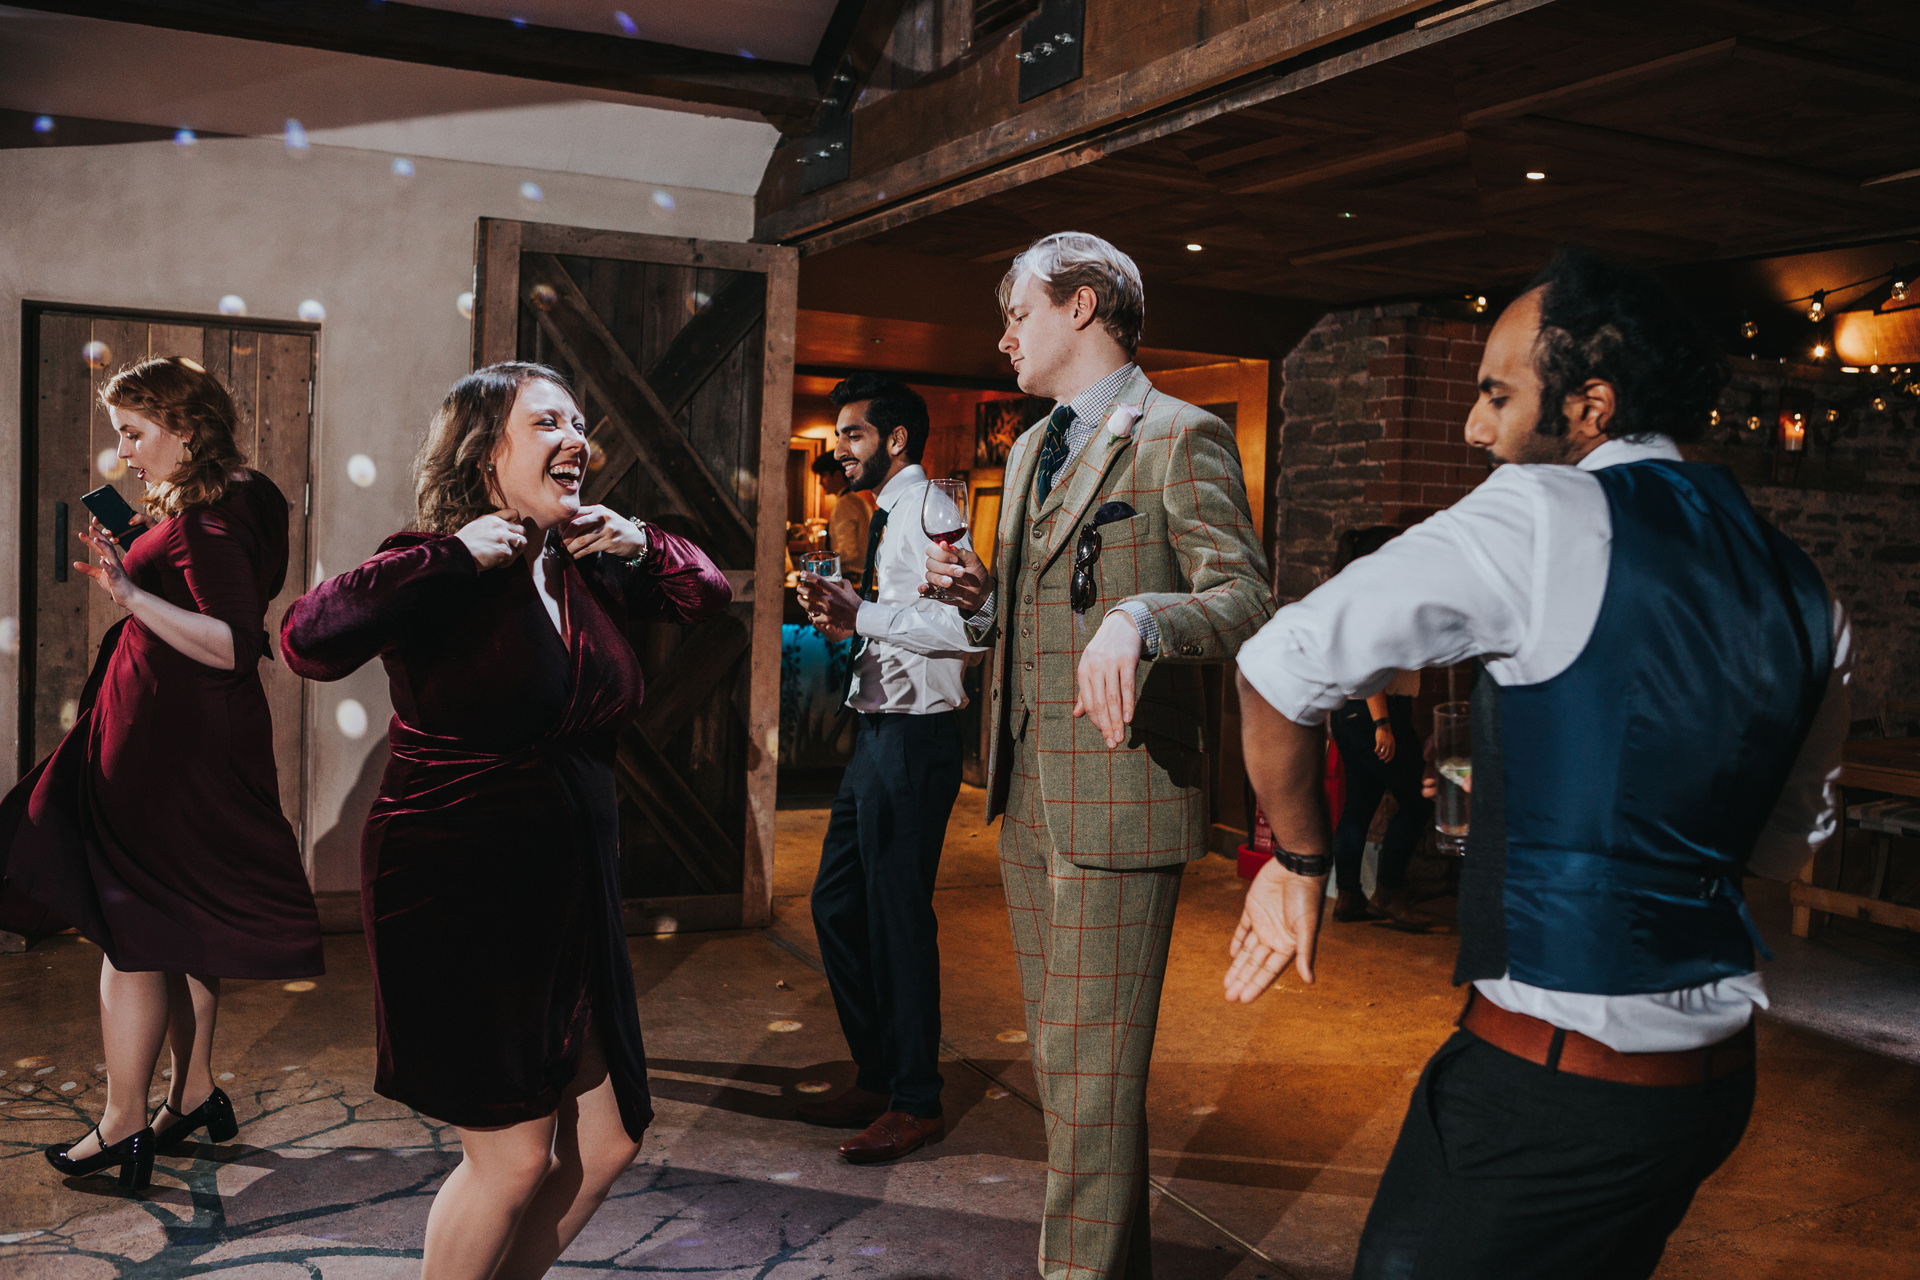 Guests laughing on dance floor.